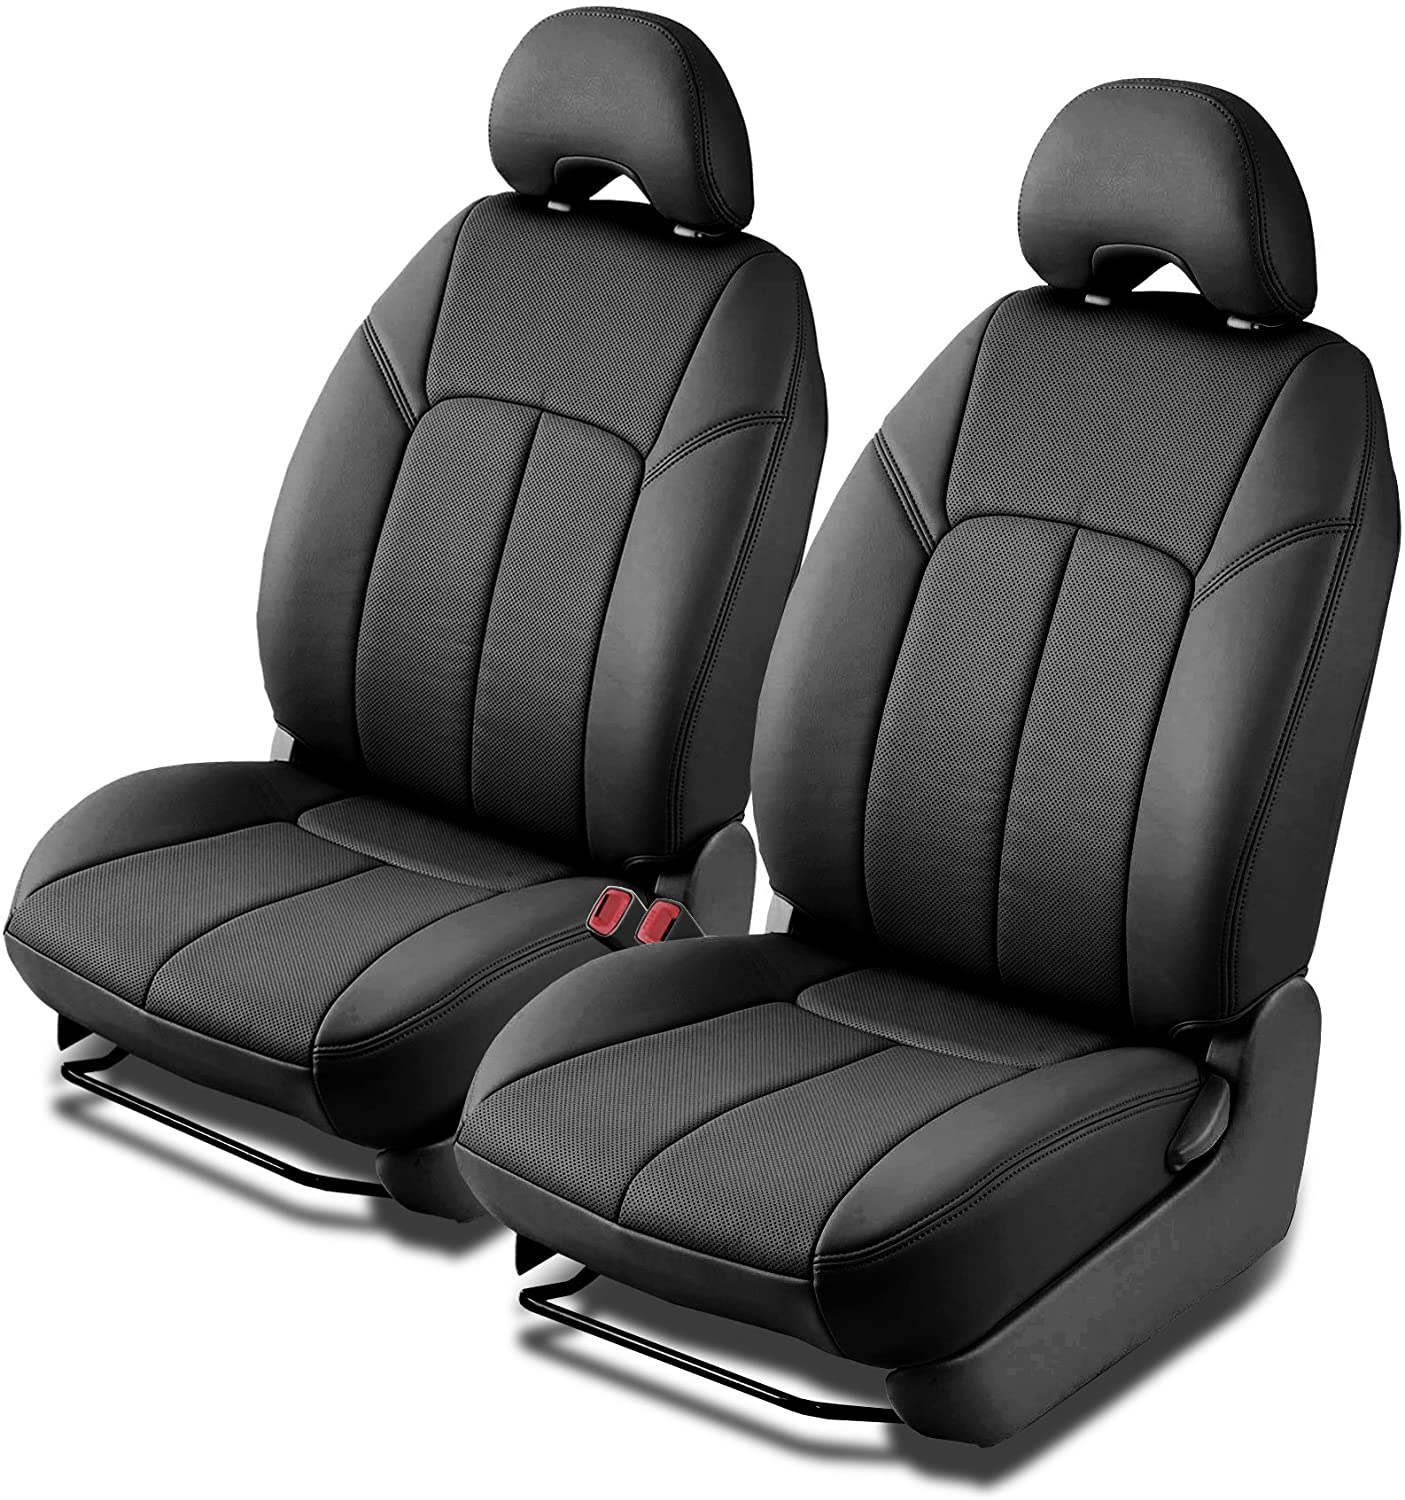 Clazzio 256011blkk Black Leather Front Row Seat Cover for Toyota Highlander, 1 Pack